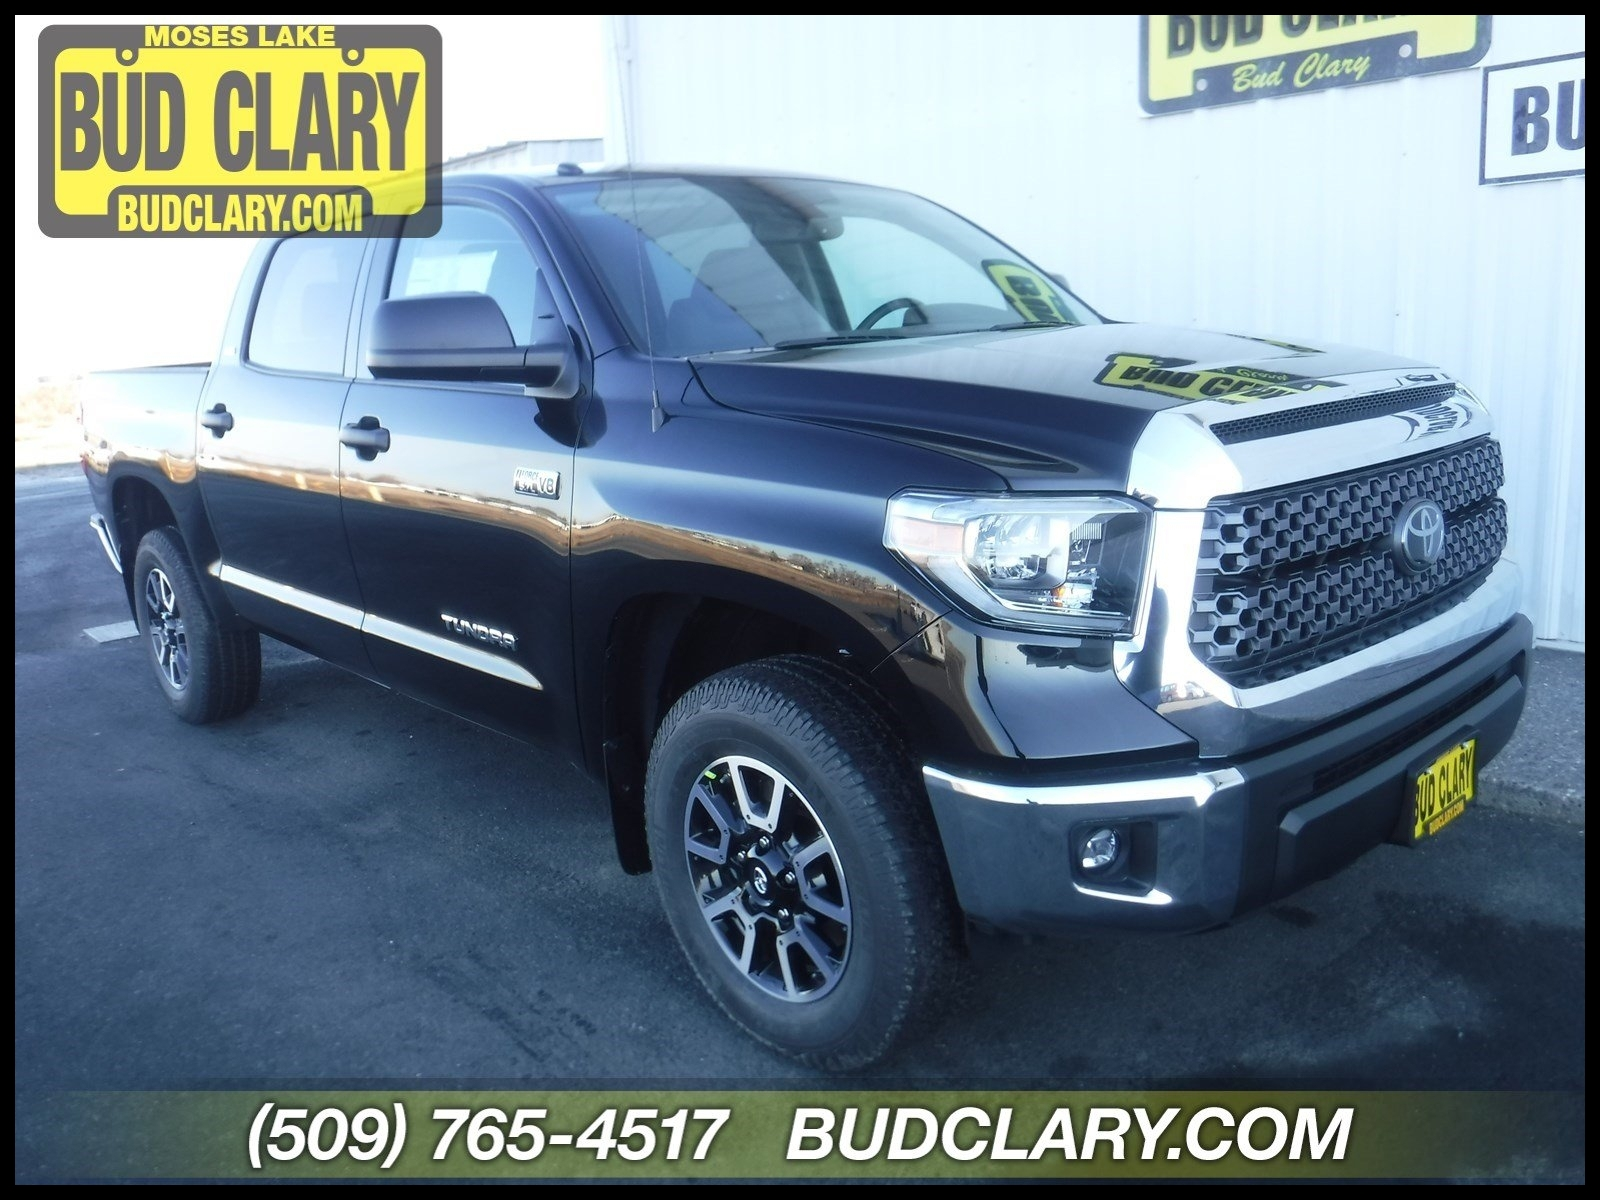 2018 Toyota Tundra for Sale in Moses Lake WA Bud Clary Toyota of Moses Lake